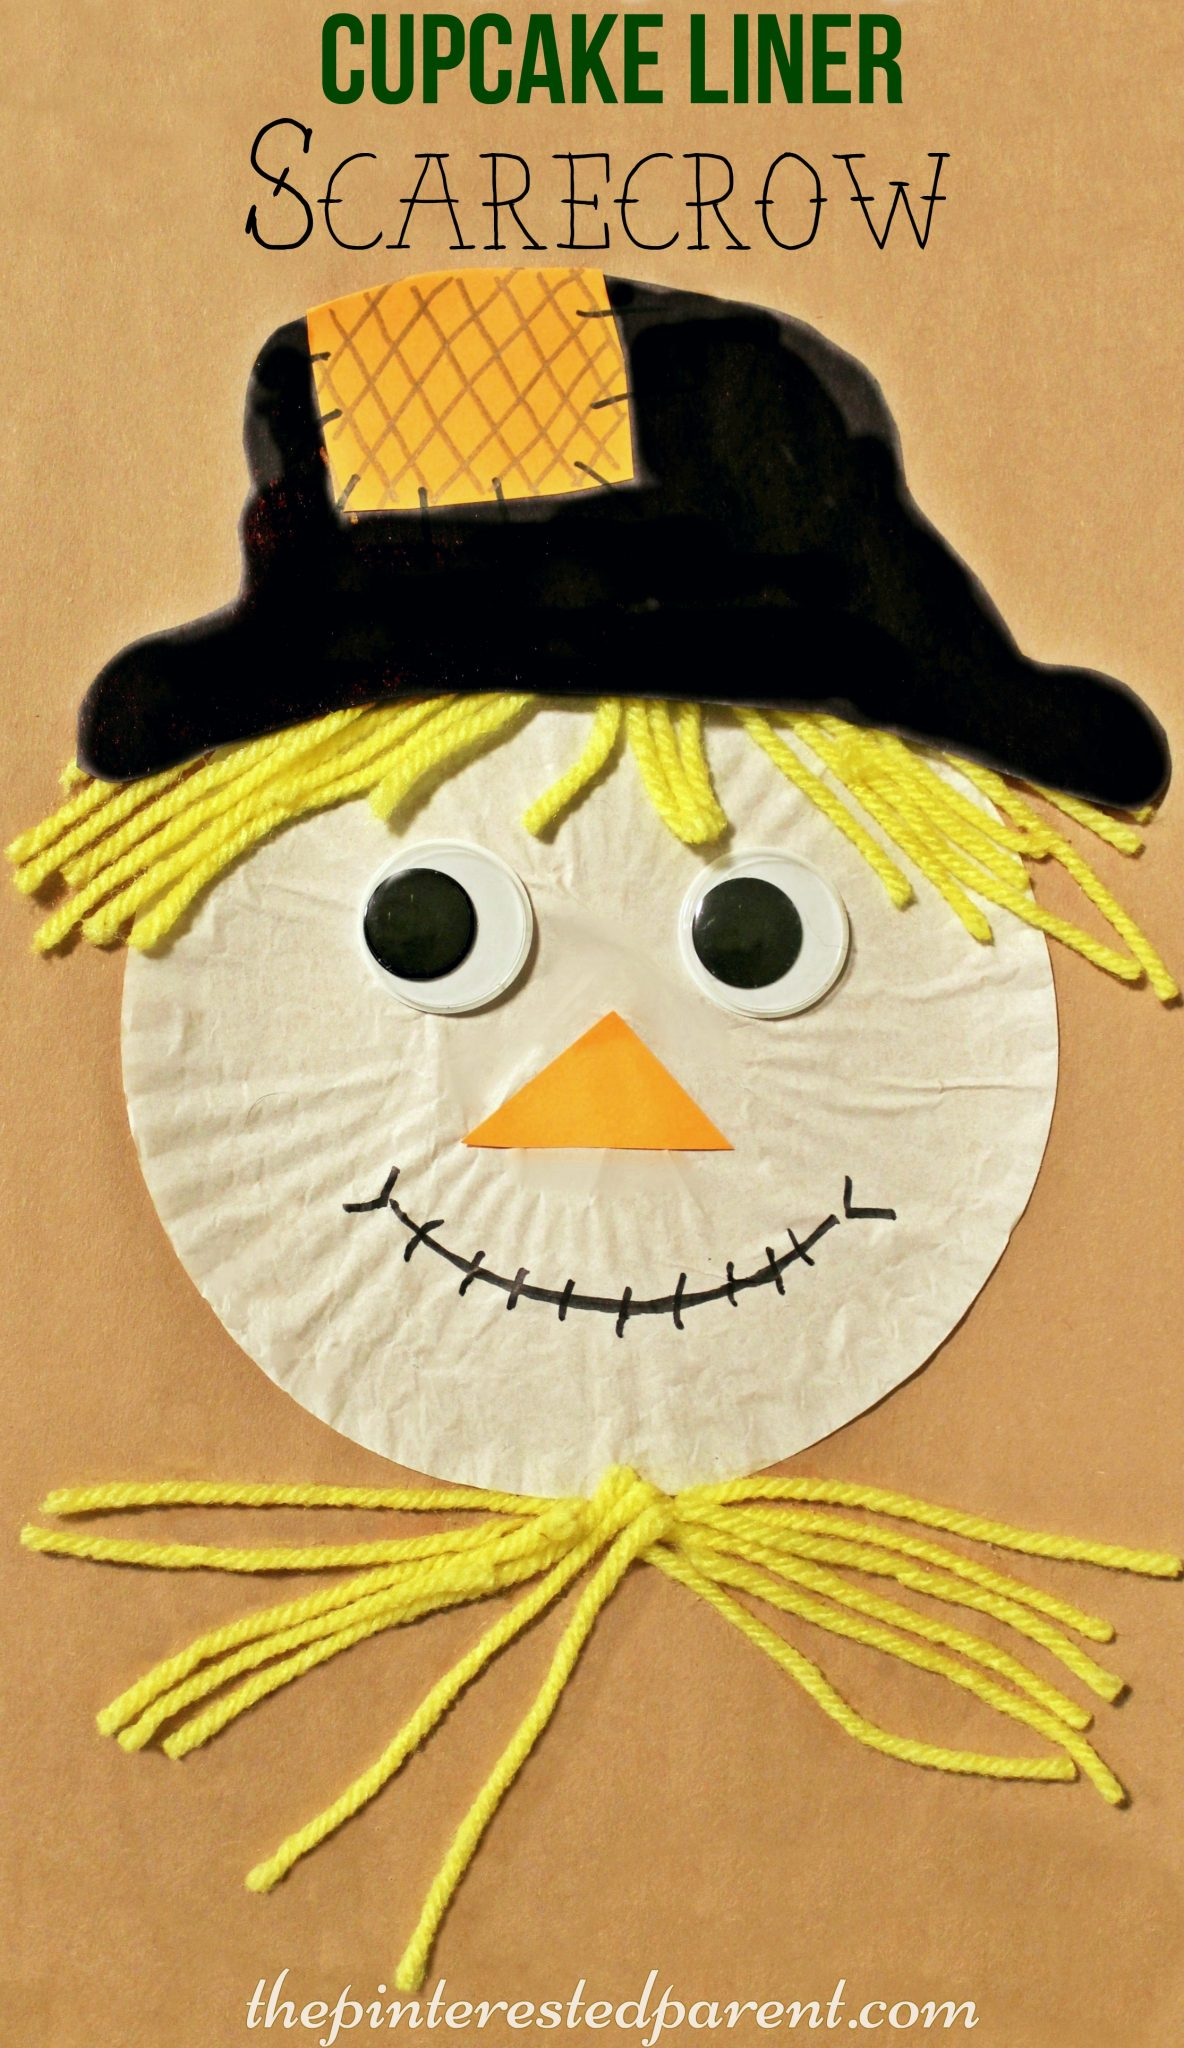 Cupcake Liner Scarecrow The Pinterested Parent